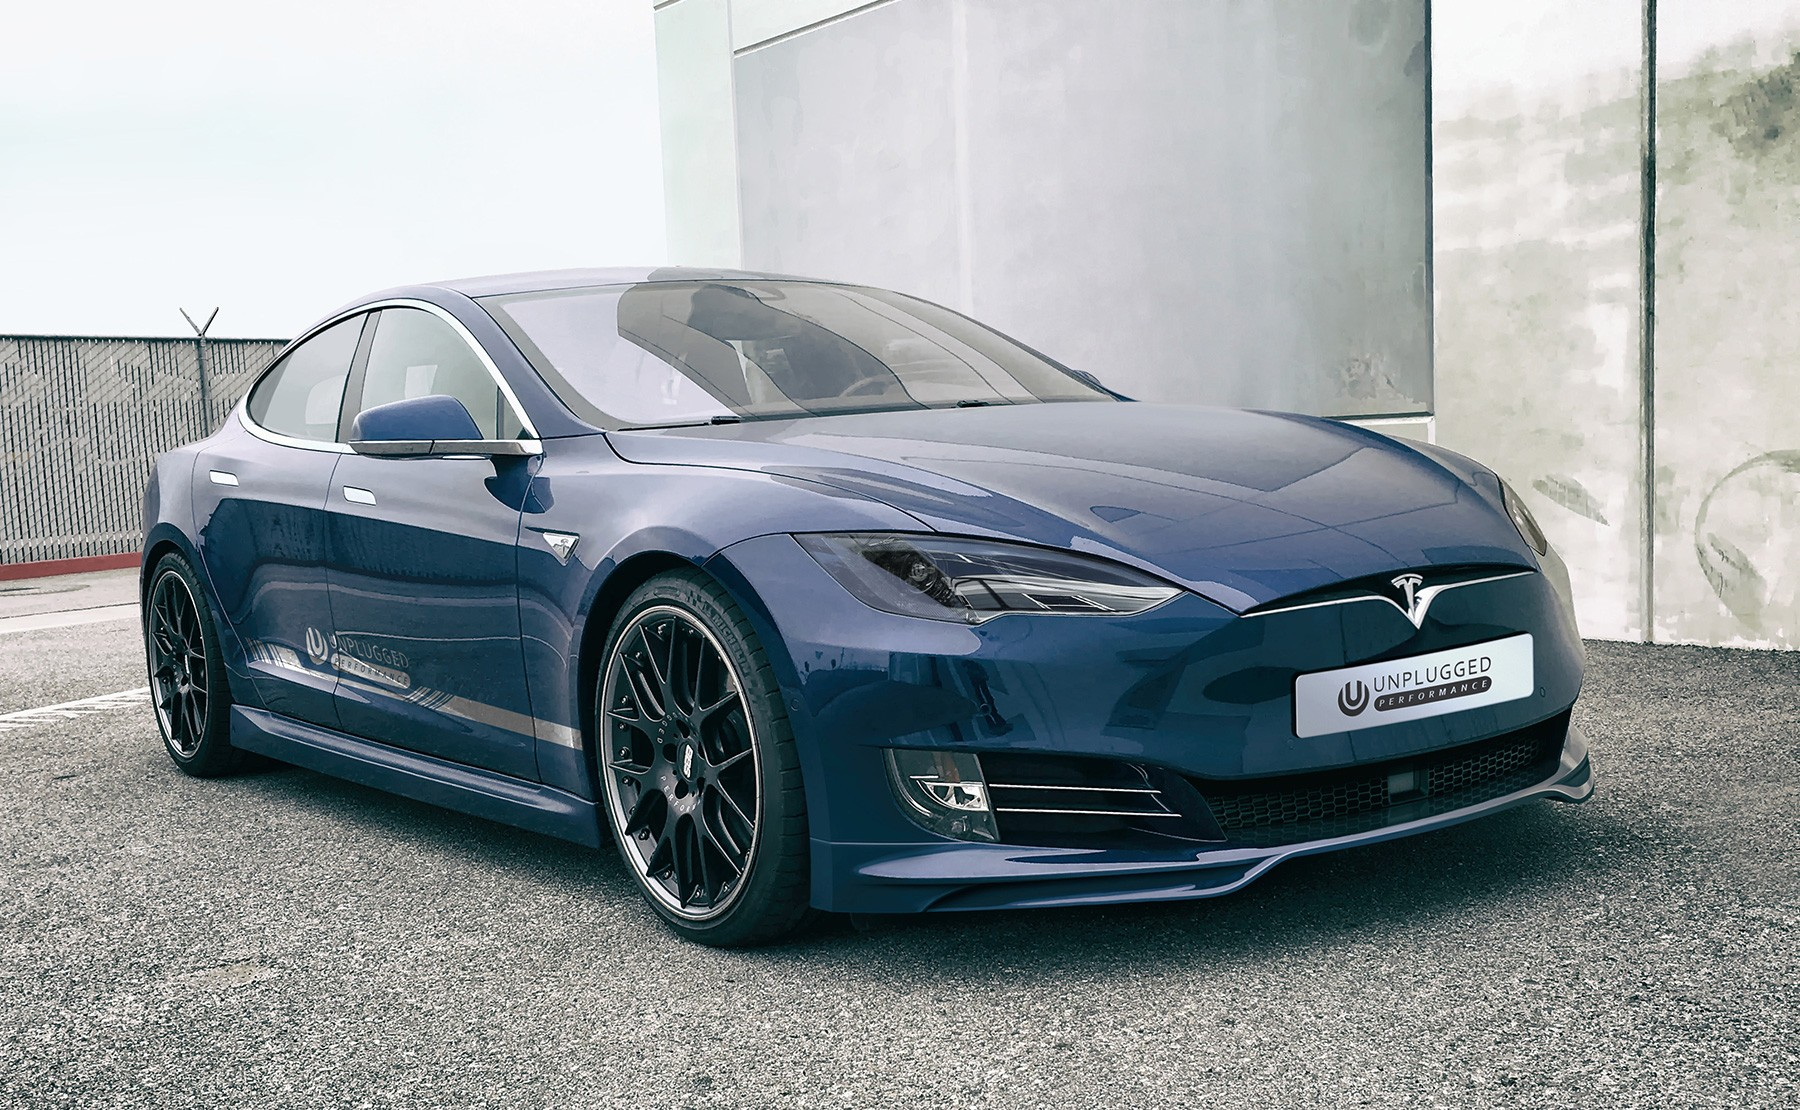 tuning company proposes new face for old tesla model s. Black Bedroom Furniture Sets. Home Design Ideas